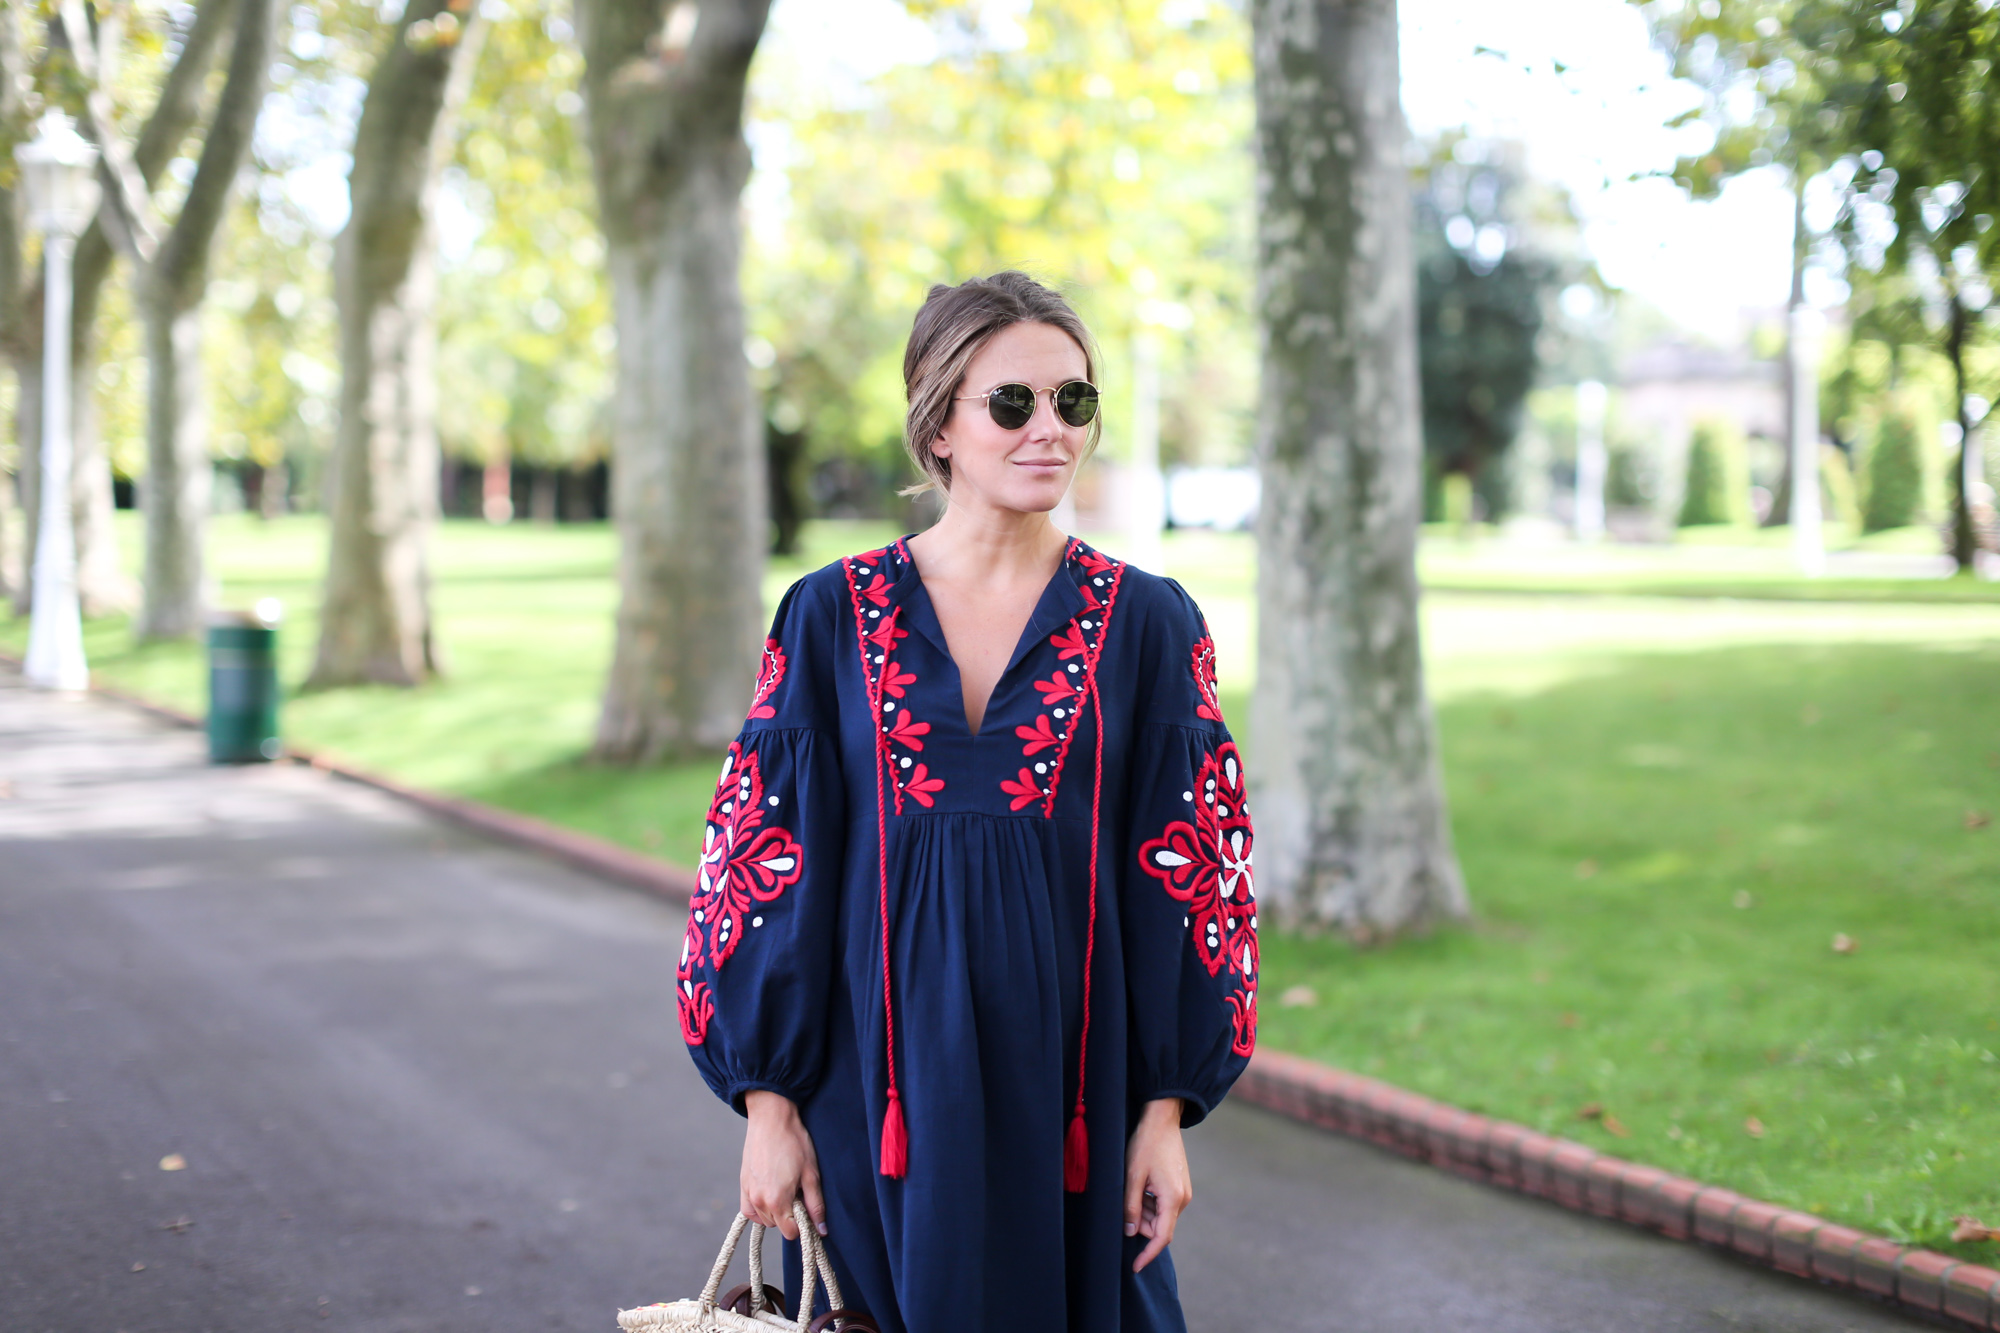 Clochet_streetstyle_fashionblogger_bilbao_zara_embroided_traditional_dress_strawbag-6